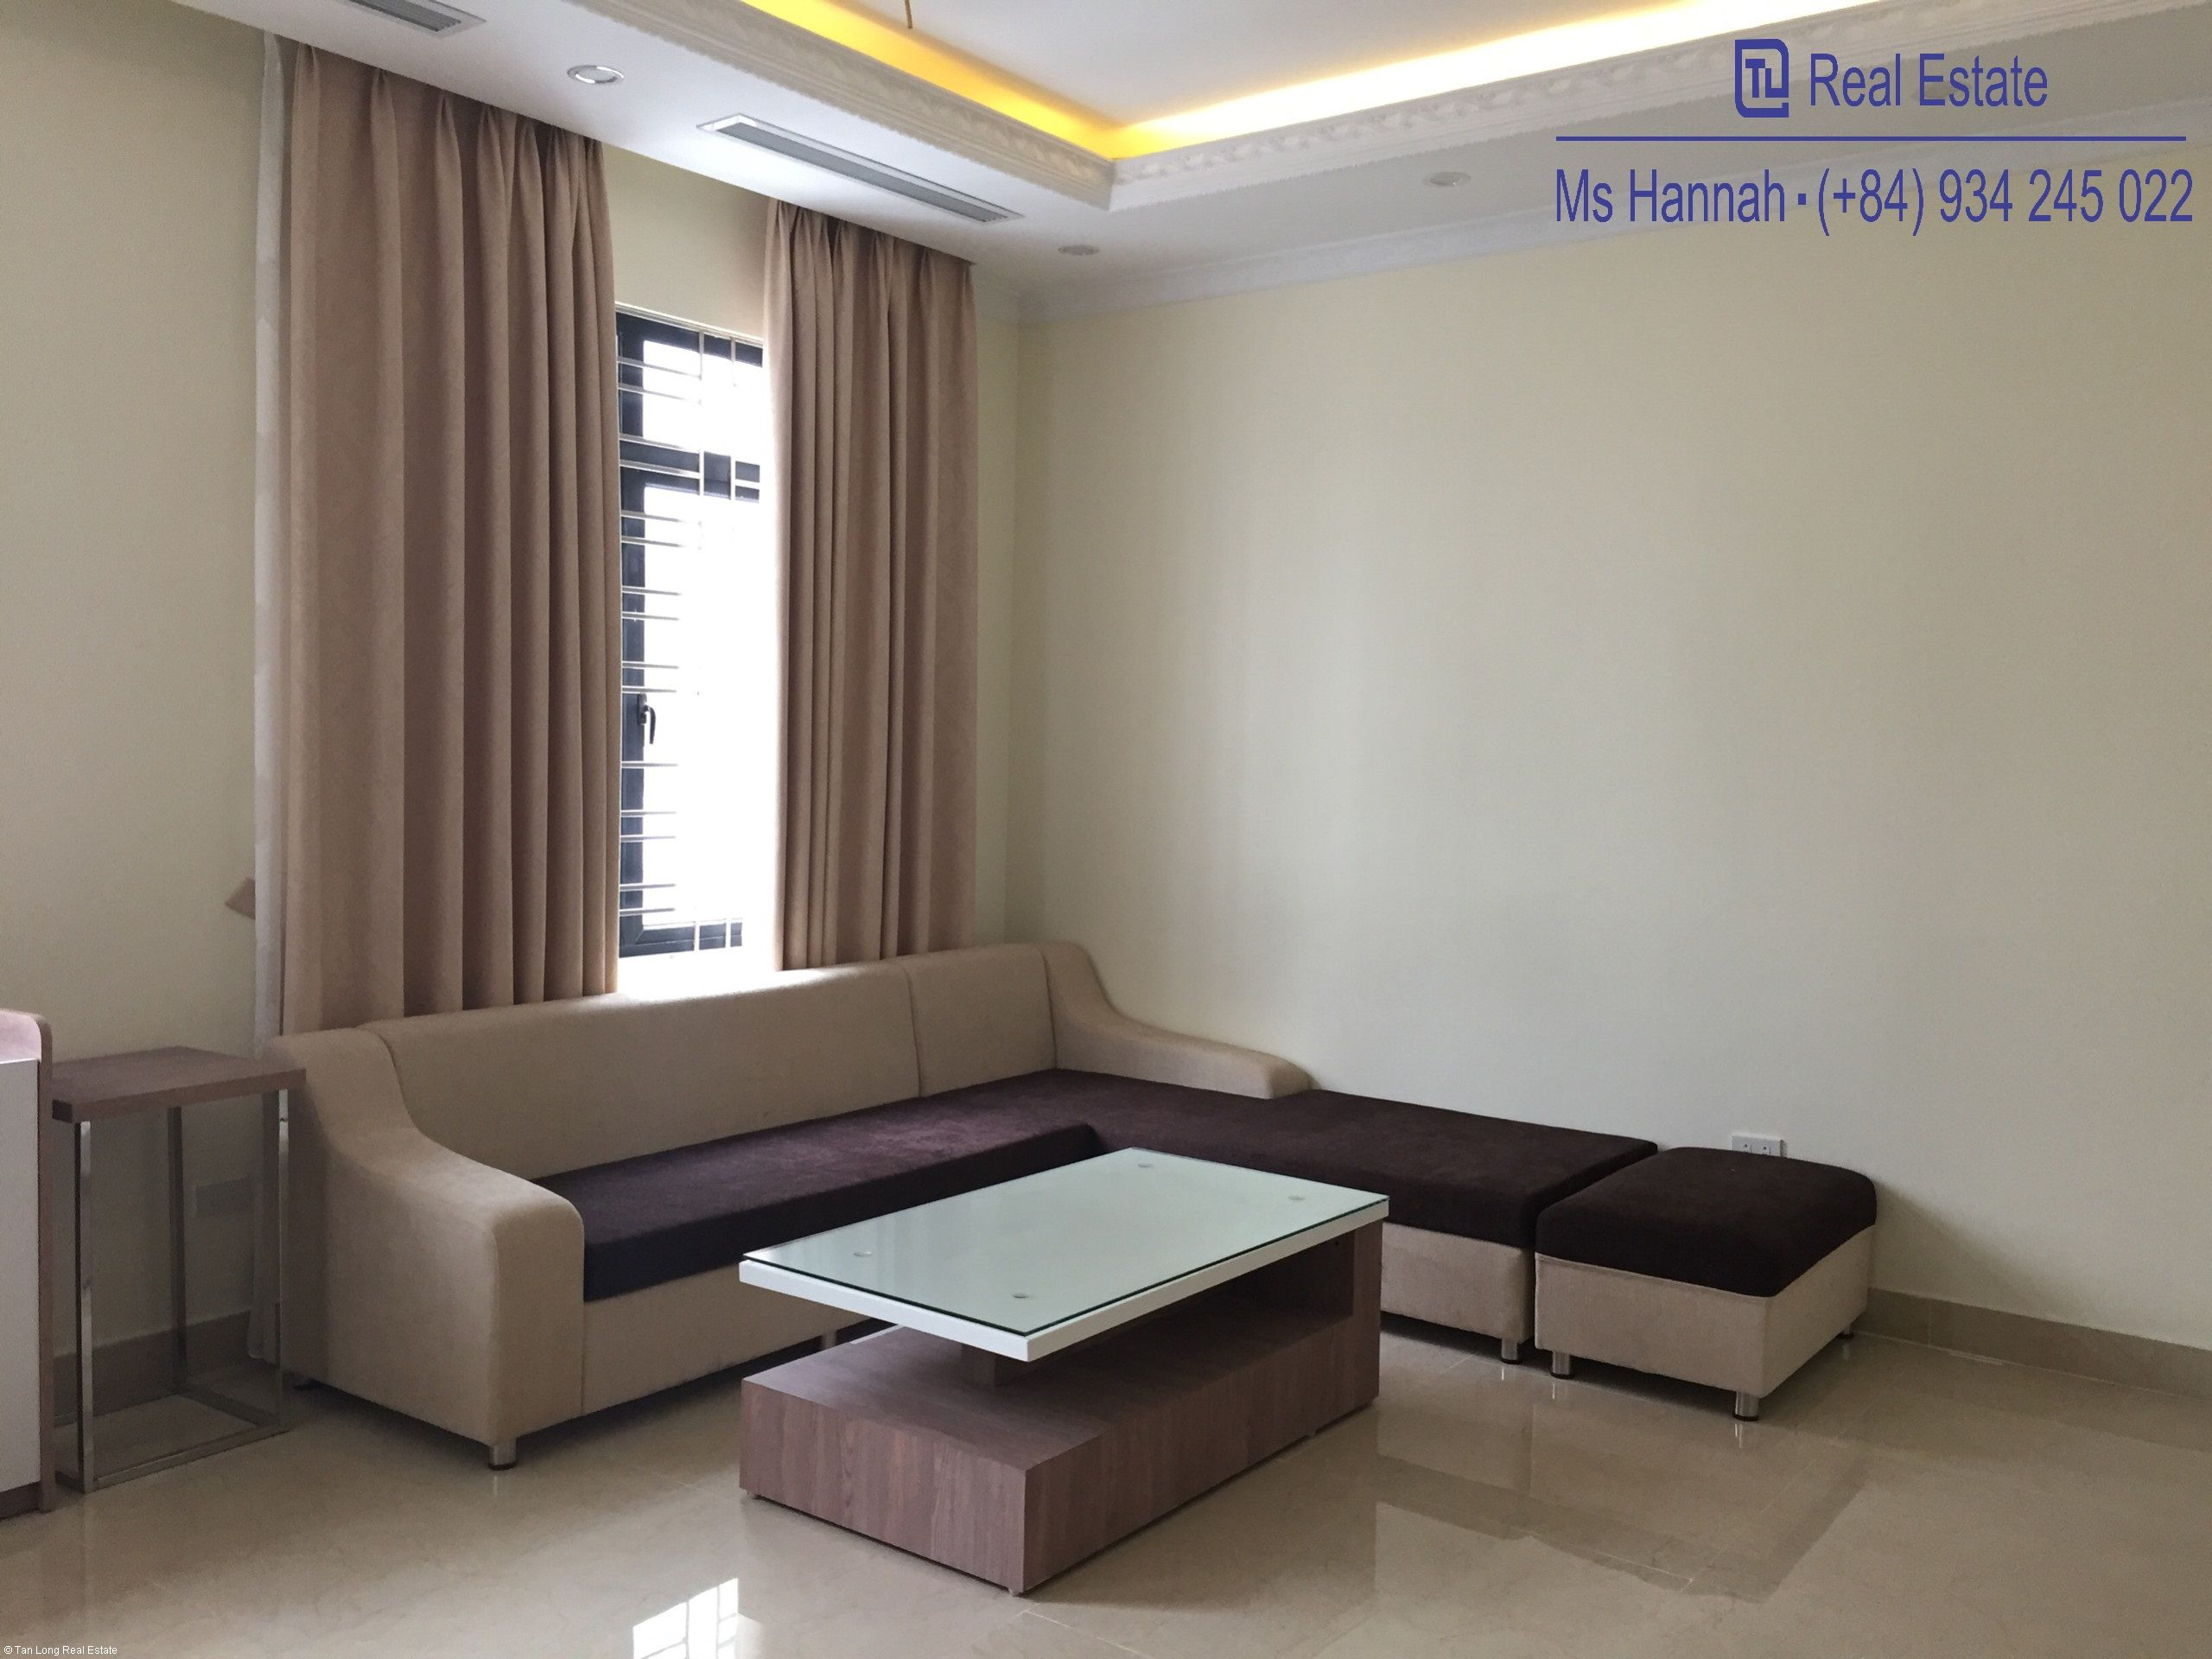 per bedroom furnished with fully rent for in apartment property bhd month bedrooms eng seef